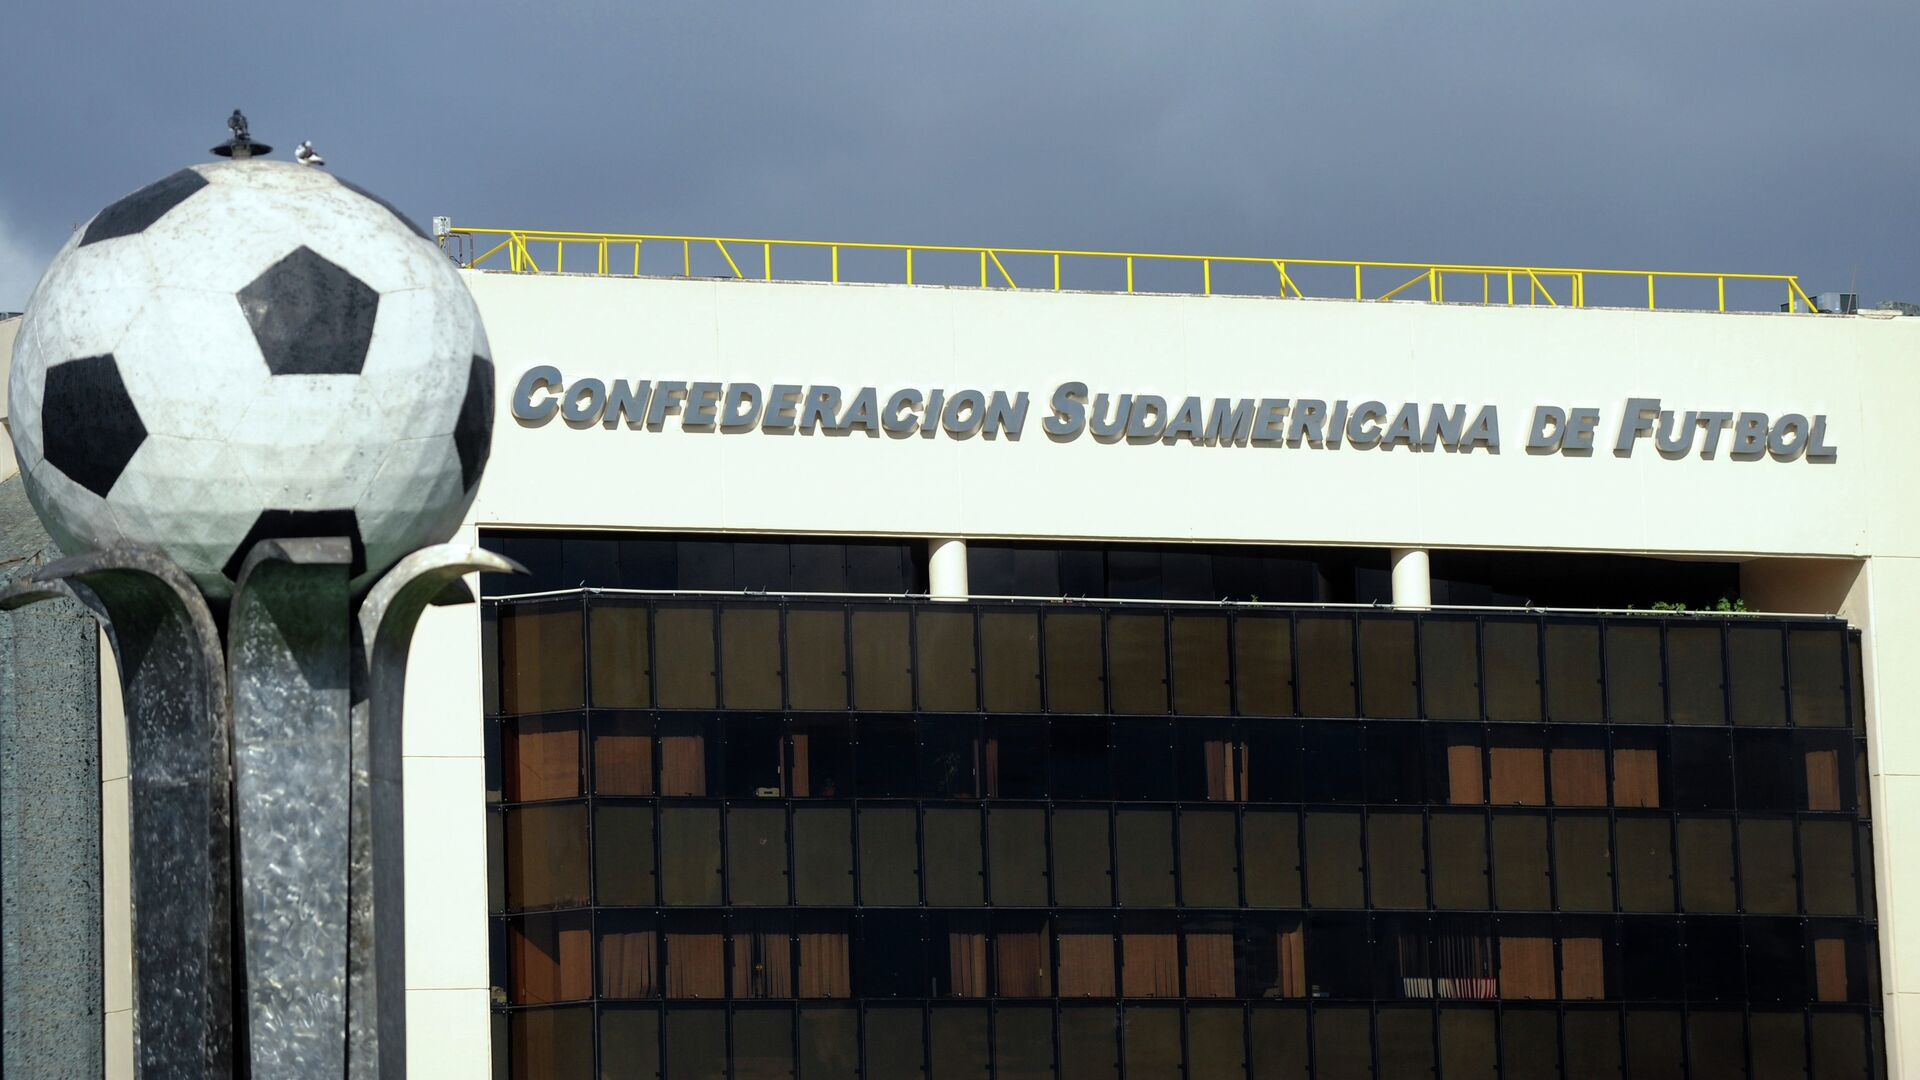 The South American Football Confederation (Conmebol) headquarters on May 28, 2015 in Luque, Paraguay.  - Sputnik Mundo, 1920, 11.10.2021